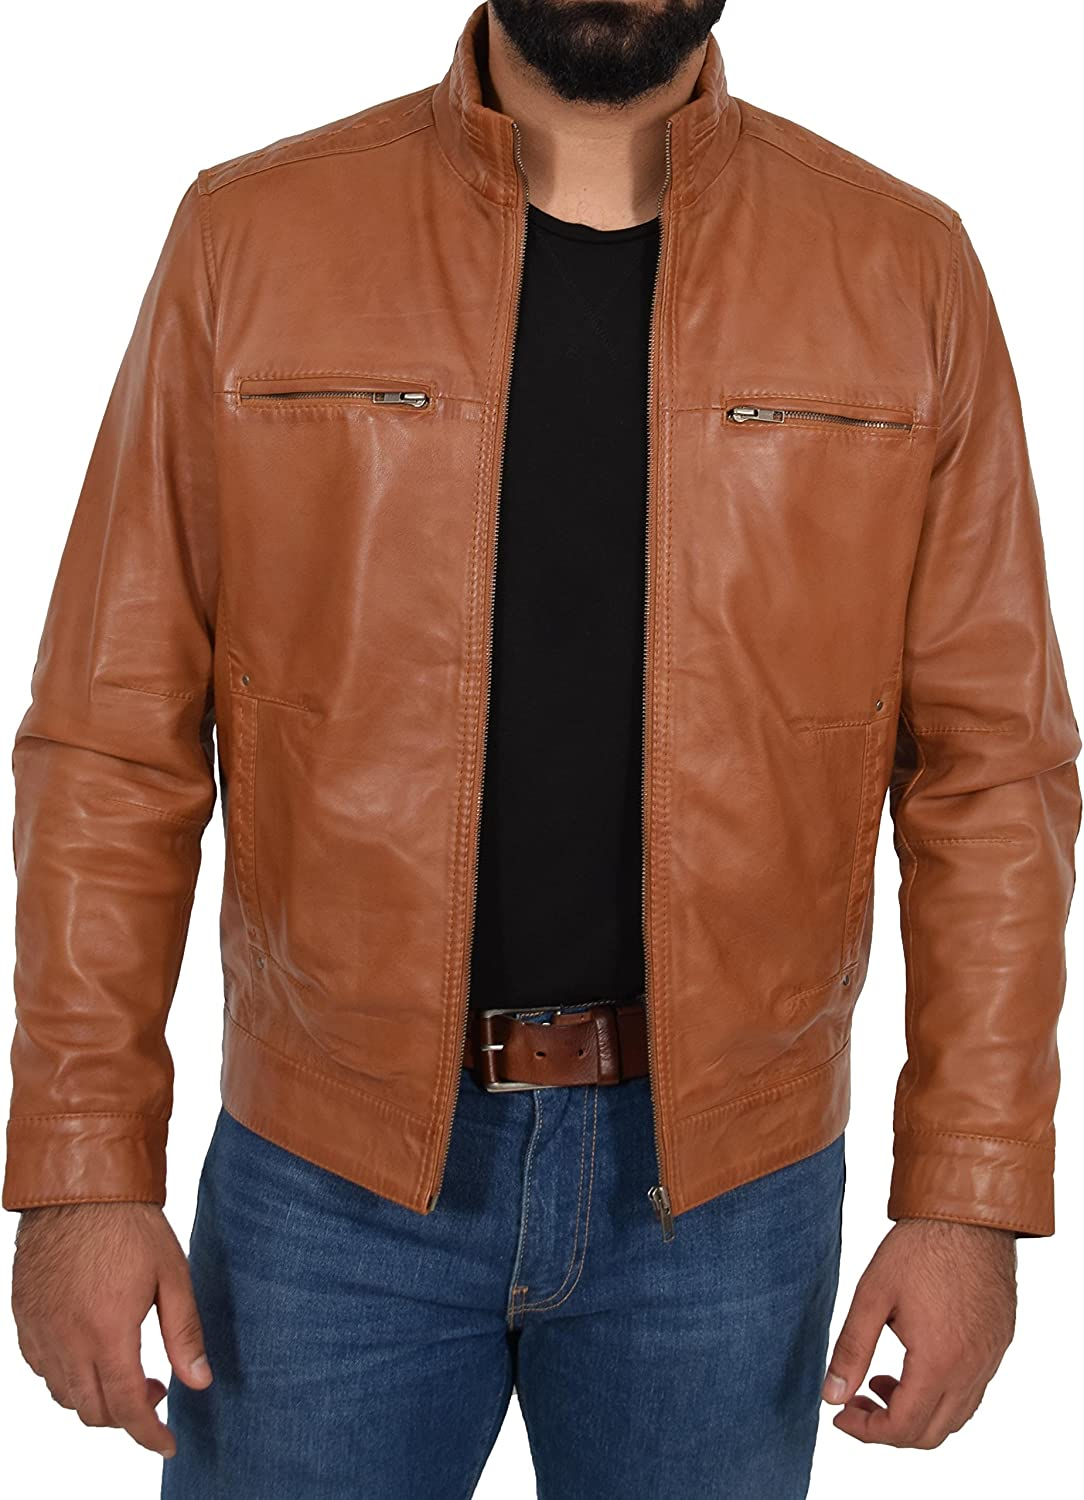 Mens Real Soft Leather Casual Biker Style Slim Fit Jacket Tony Tan